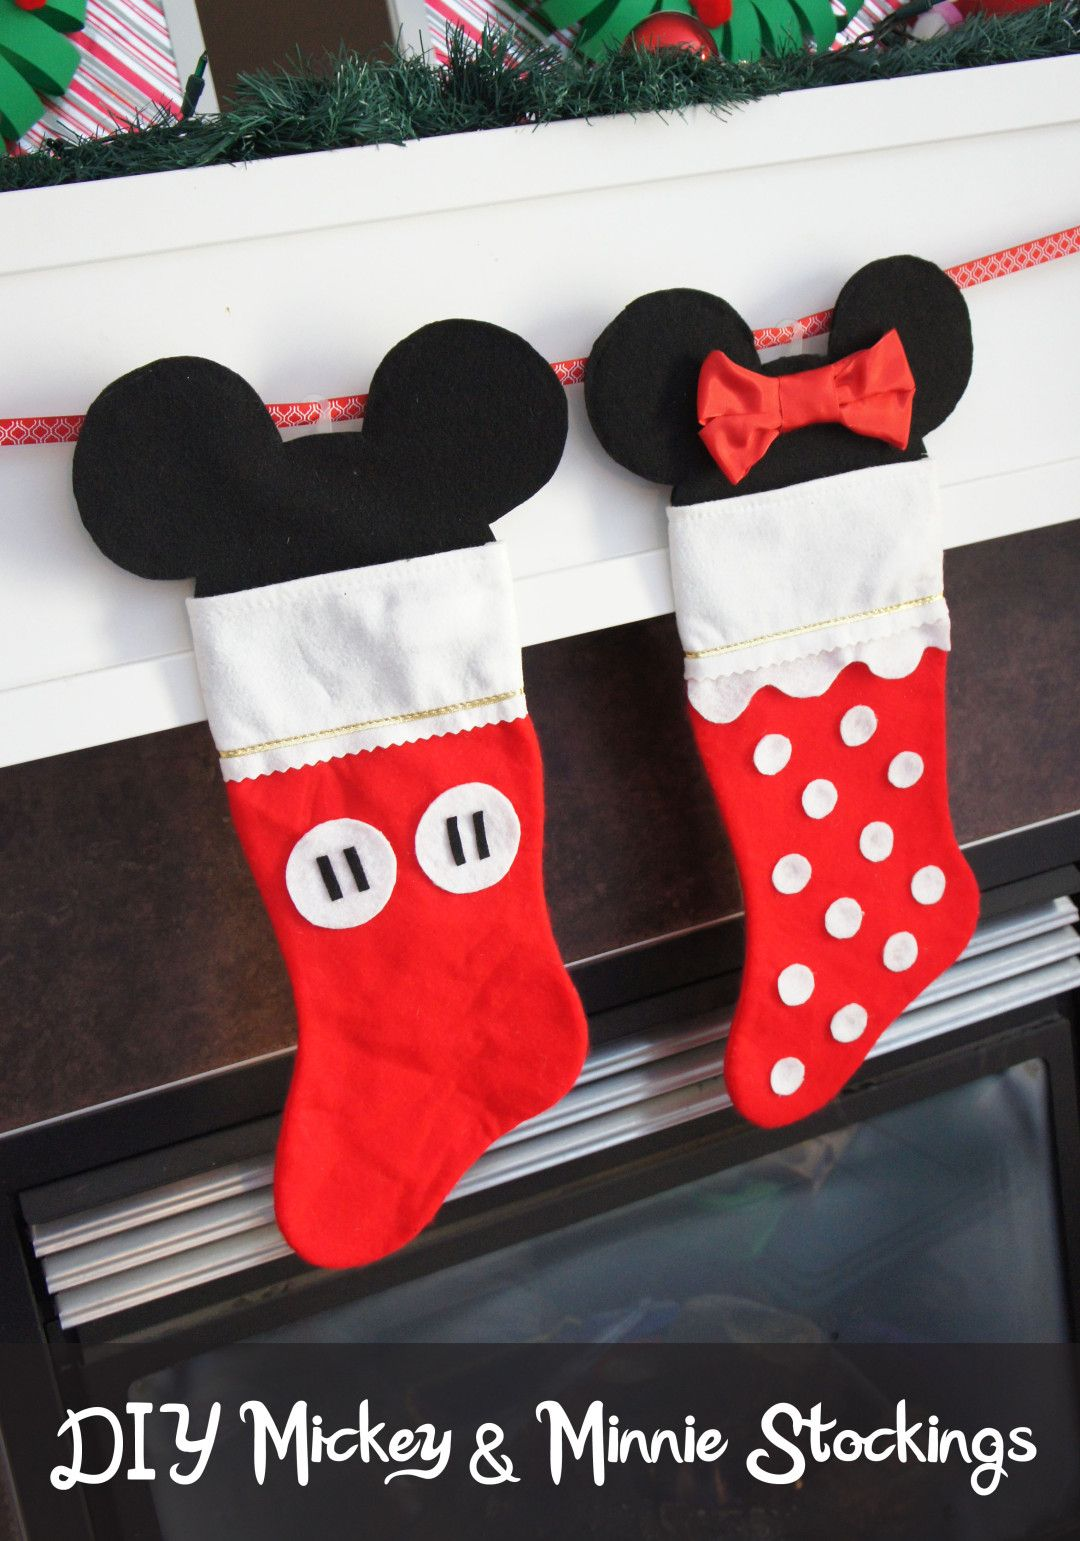 And the mickey and minnie stockings were hung by the chimney with